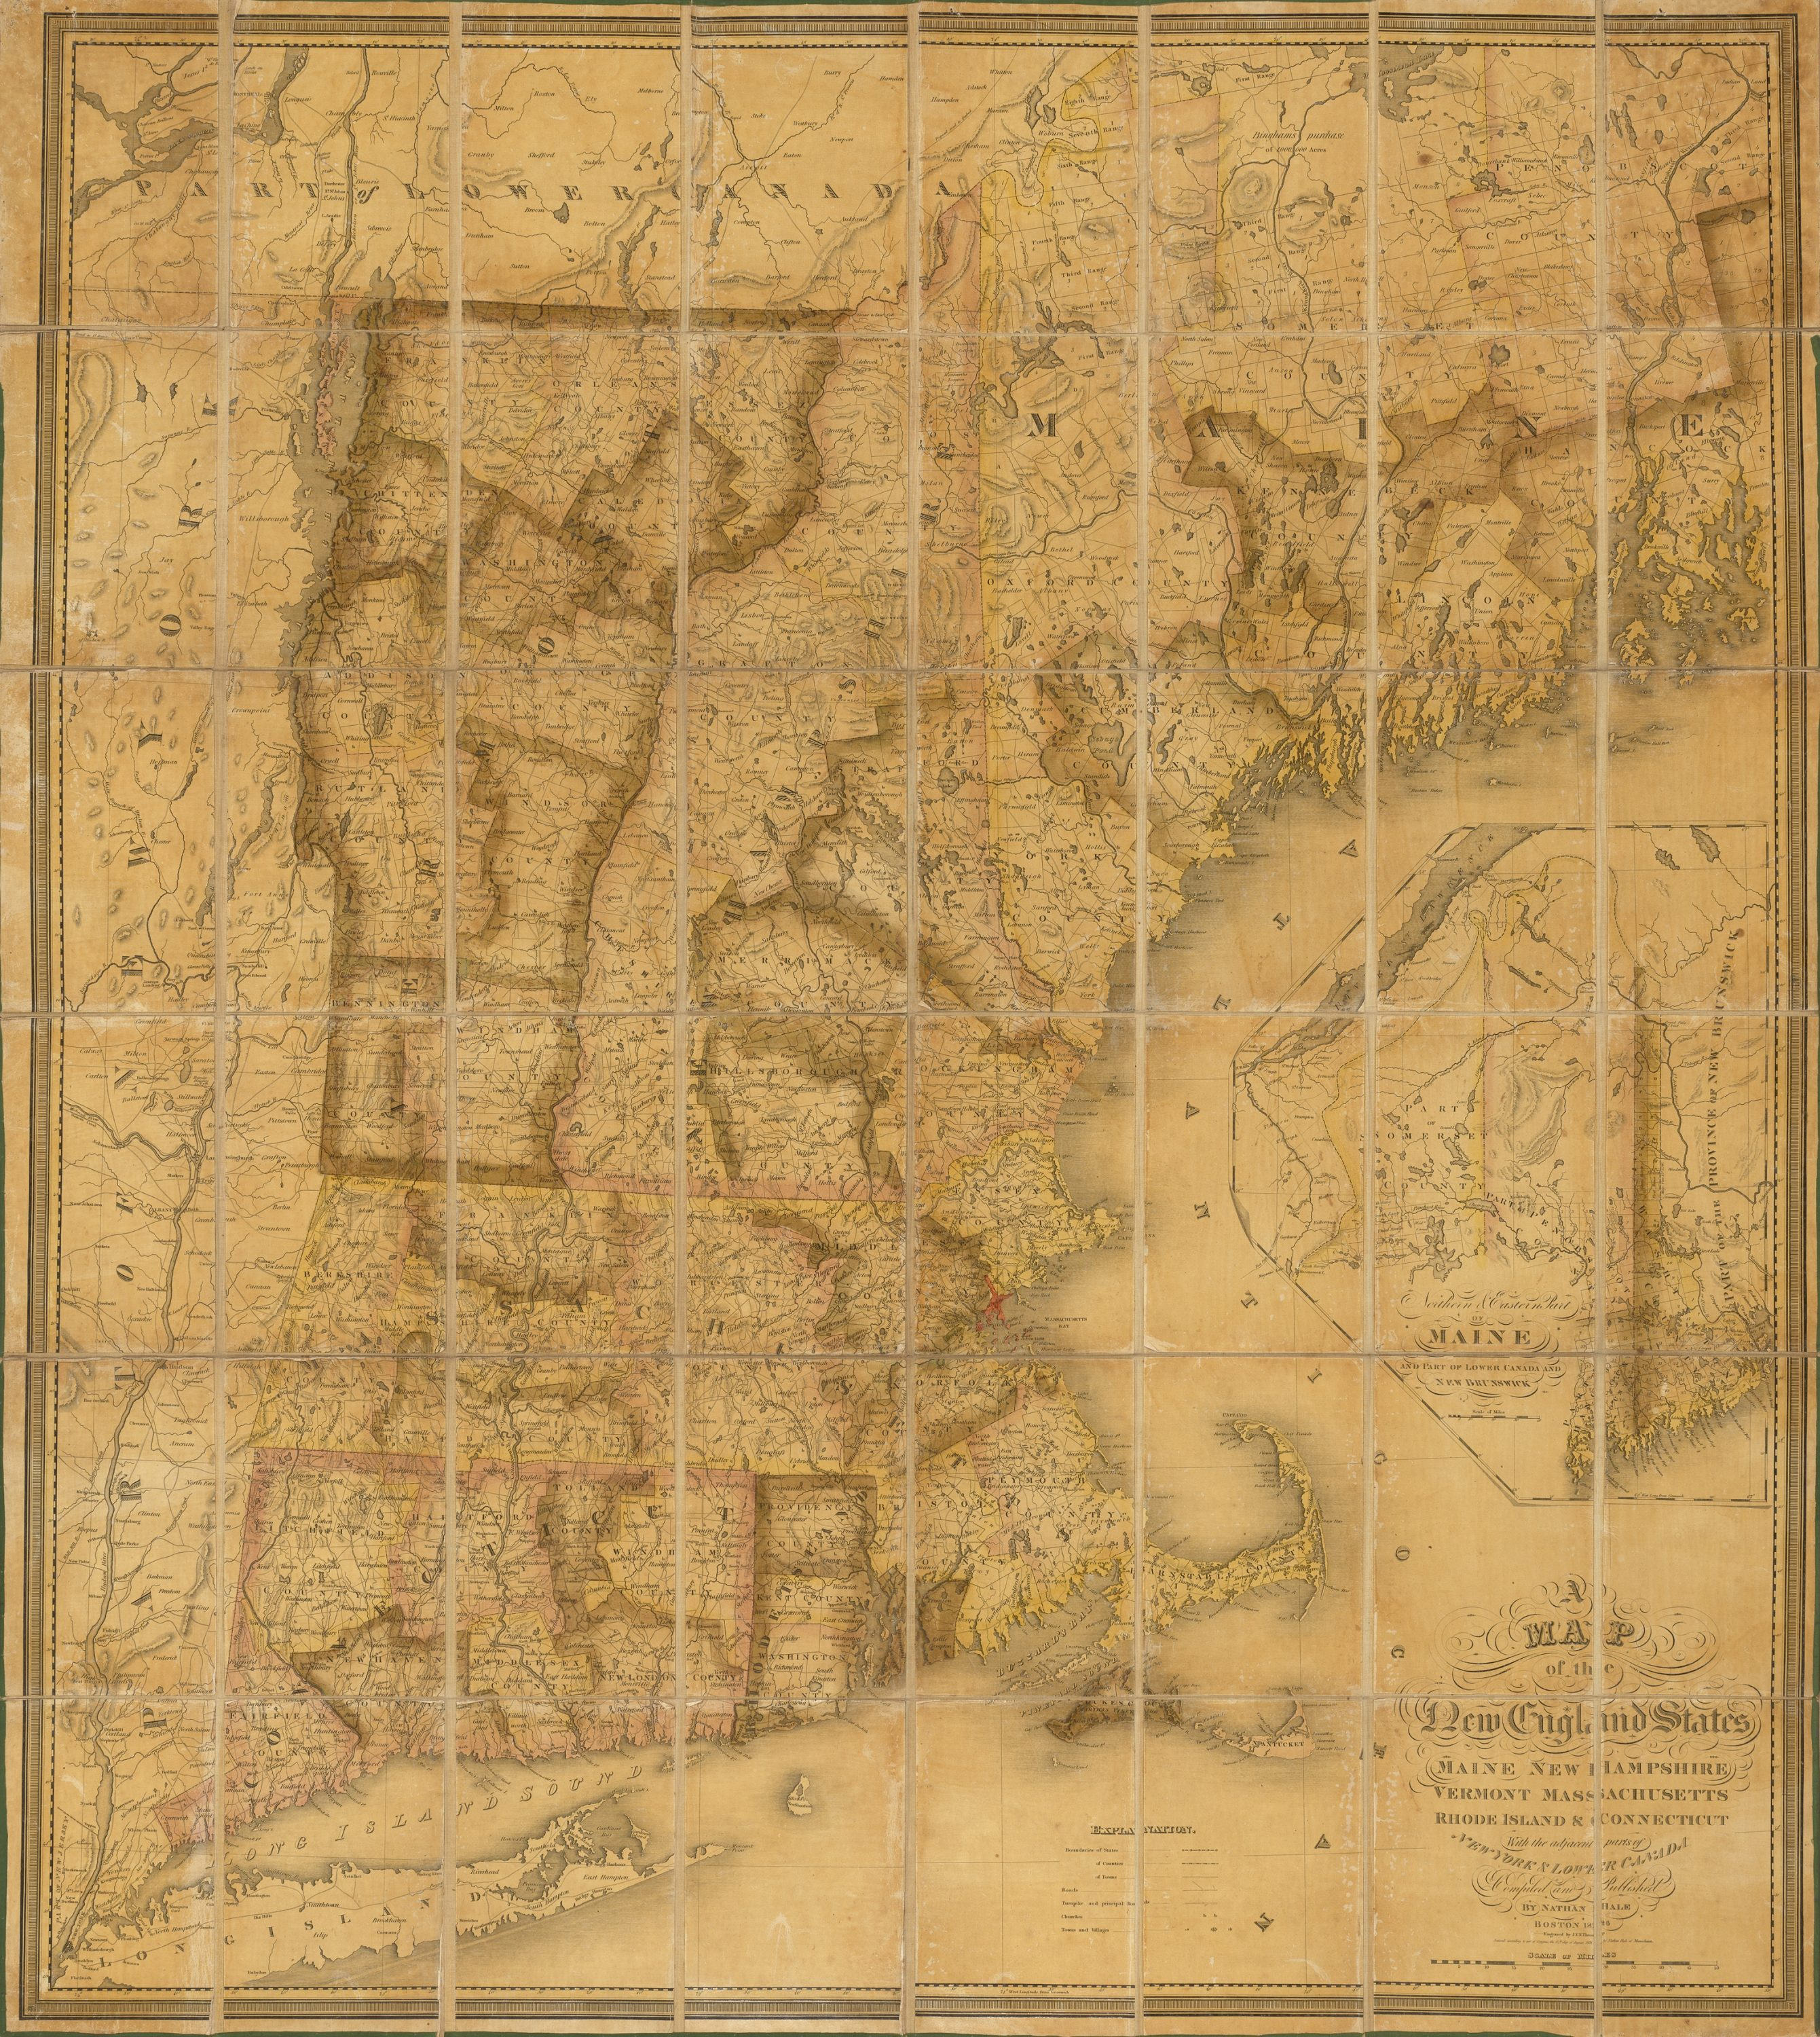 A landmark 1826 map New England